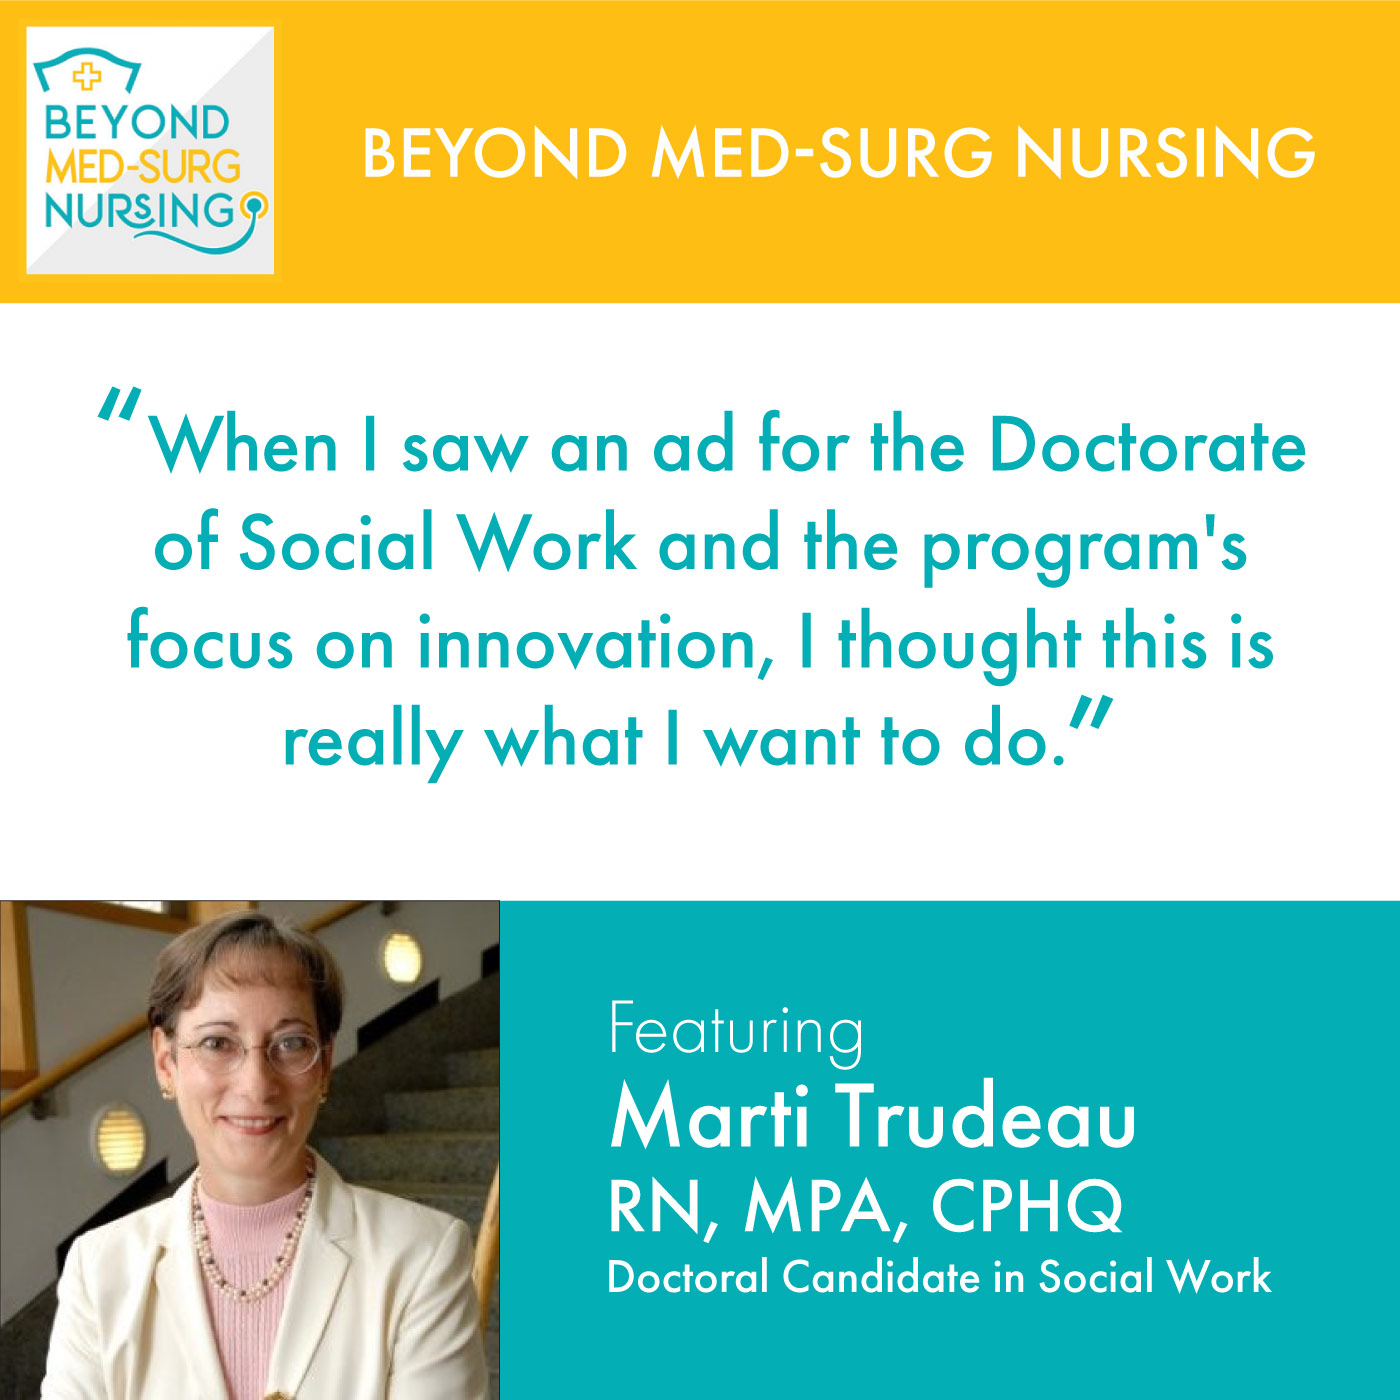 001: How Working in Home Care Inspired Marti Trudeau to Get a Doctorate in Social Work Image